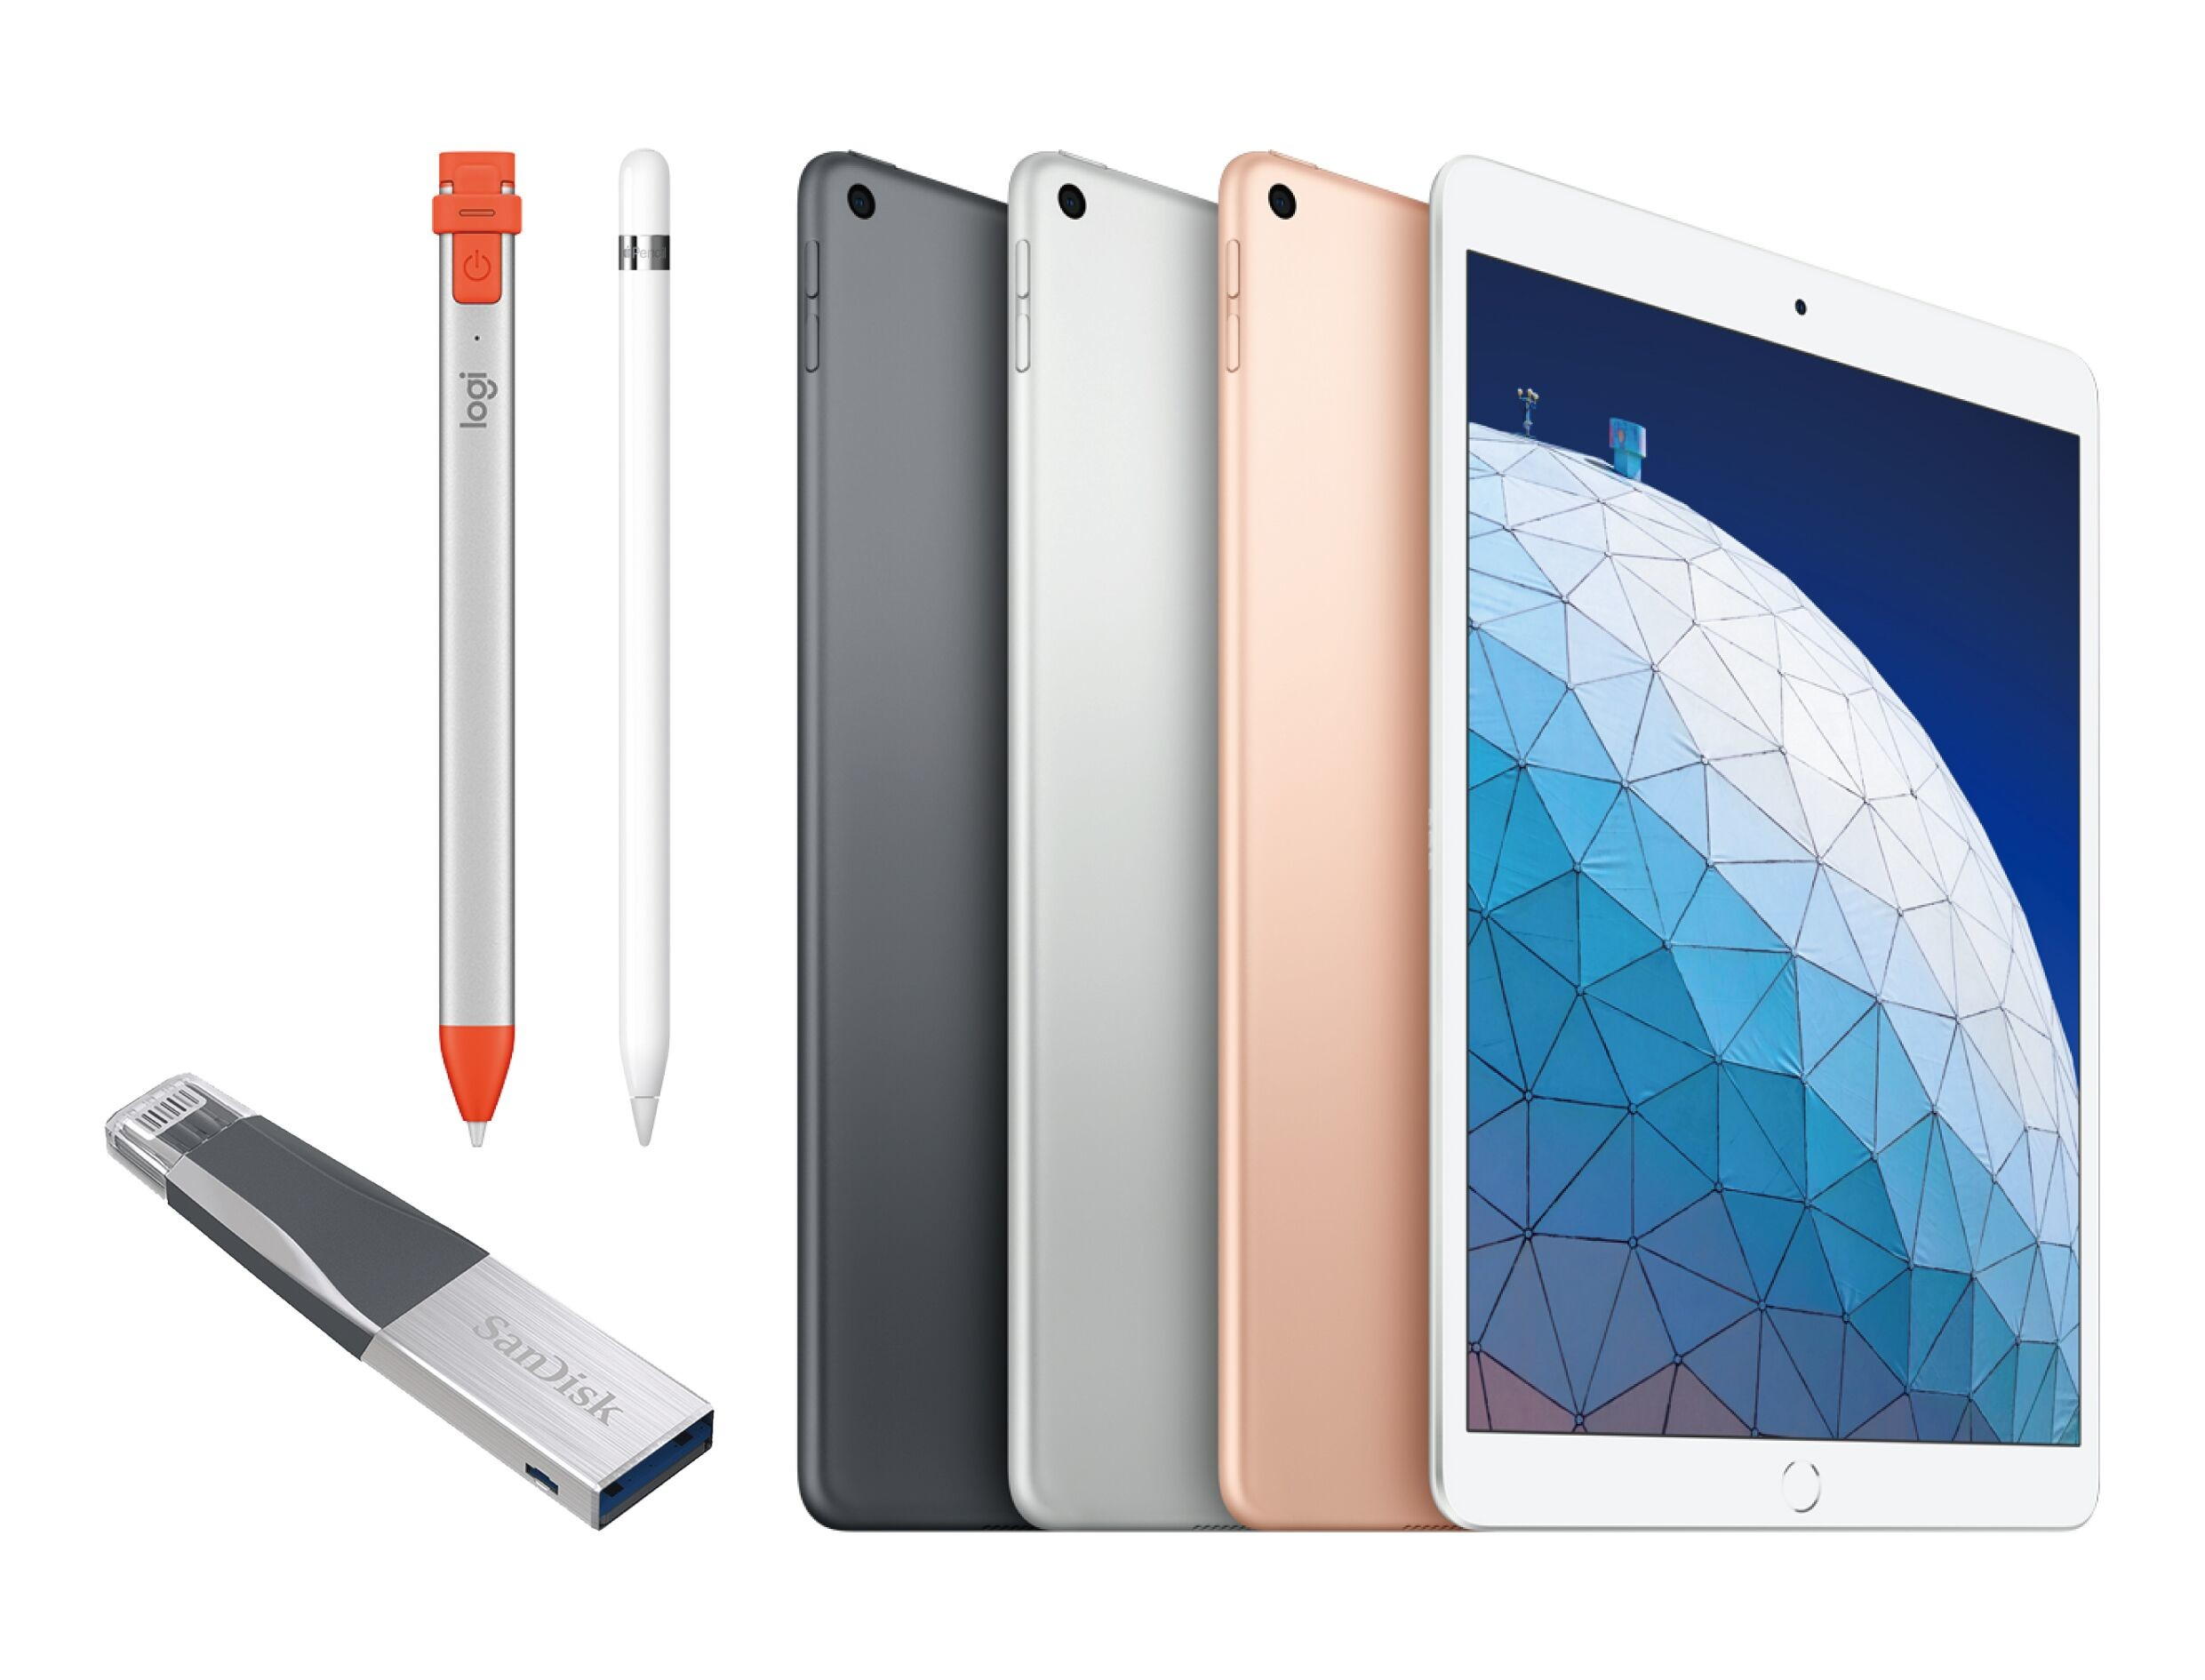 iPad Air, iPad 4, iPad Air, iPad, iPad Mini, Apple, , iPad mini, MacBook Air, iPad Pro, ipad air 2019, Product, Ipad, Technology, Gadget, Electronic device, Mobile phone, Portable communications device, Communication Device, Smartphone